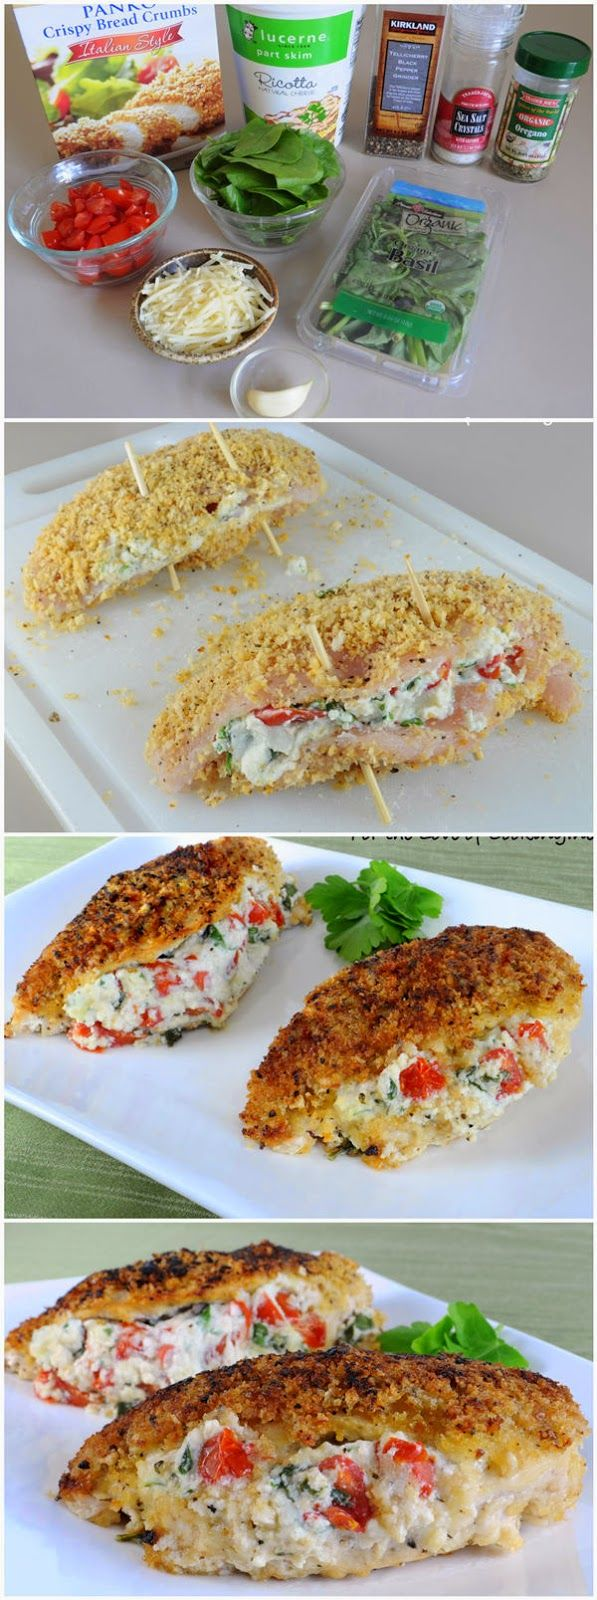 Ricotta  Spinach  Stuffed Crusted Tomatoes  Chicken your with customize   and Basil Freshdreamer own s Panko